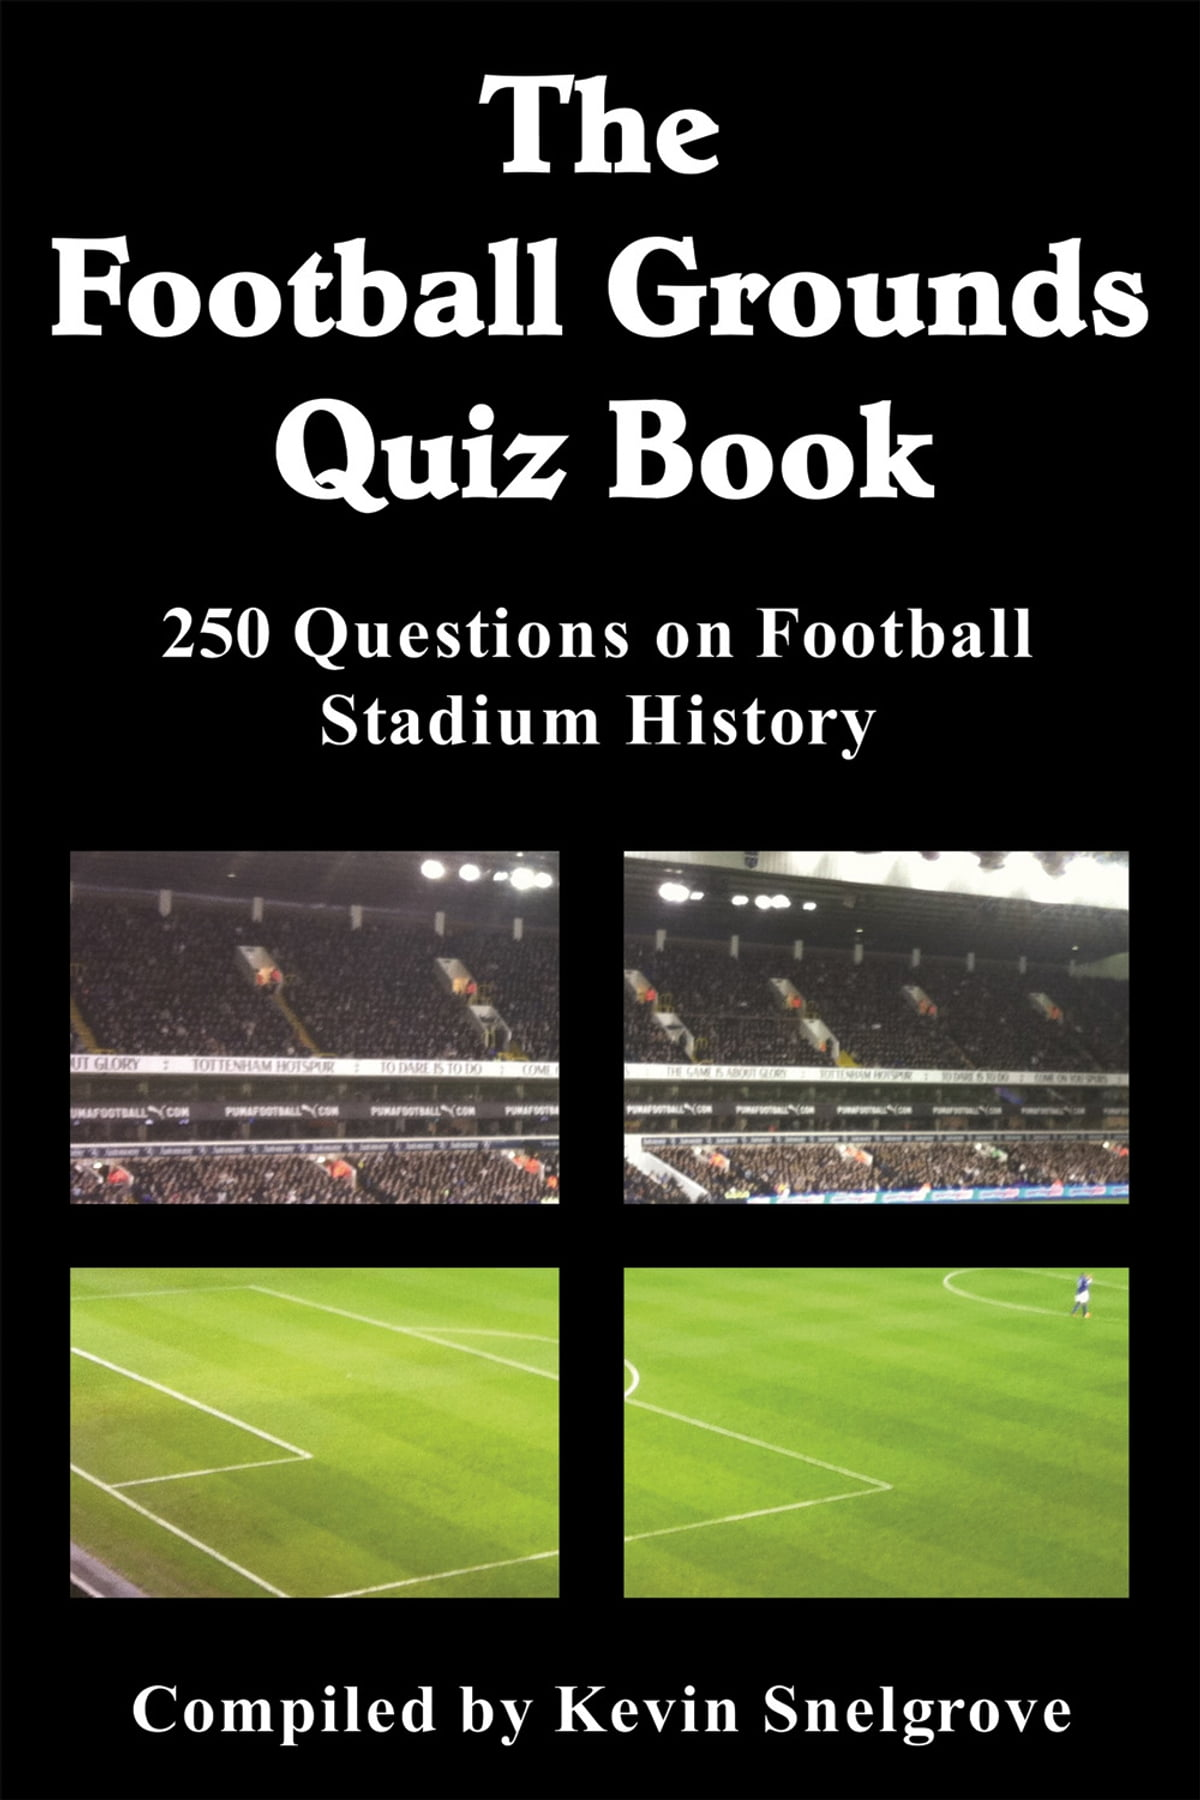 The Football Grounds Quiz Book Ebook By Kevin Snelgrove